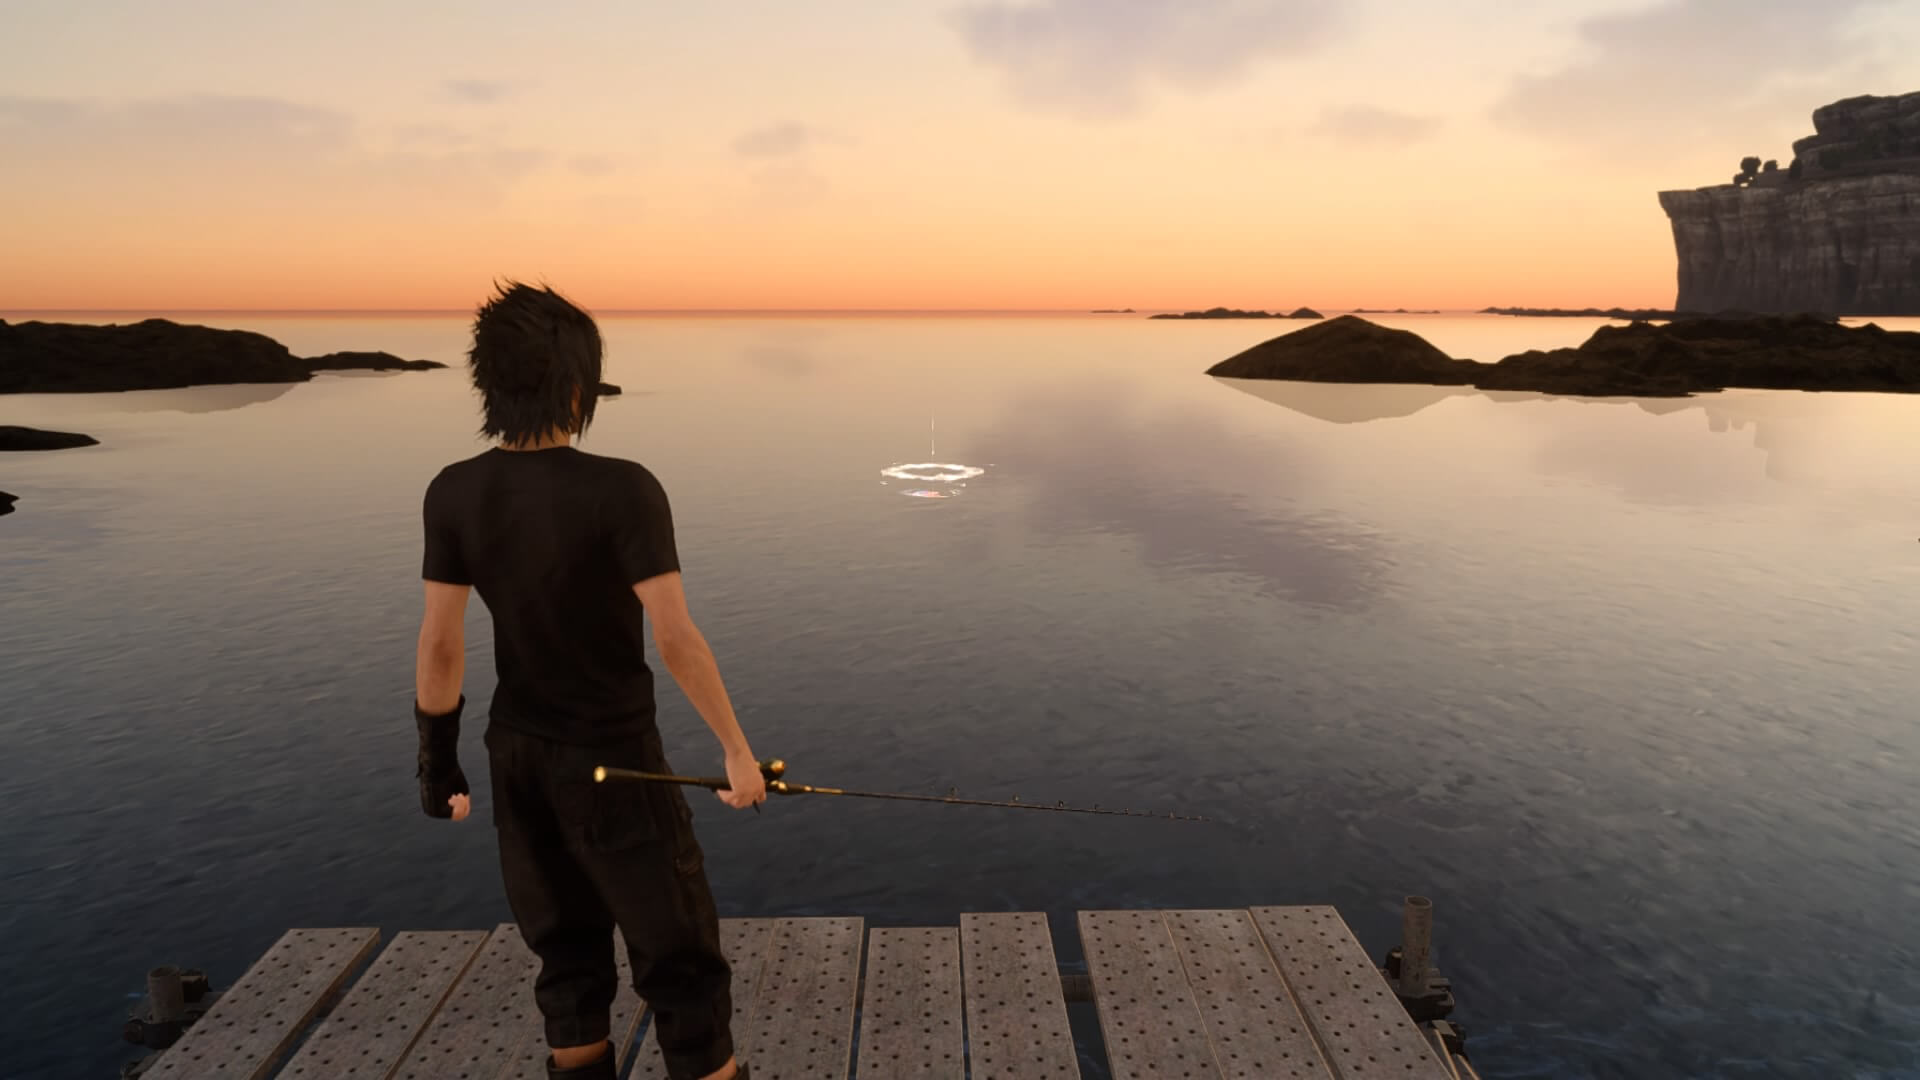 ff15fishing111